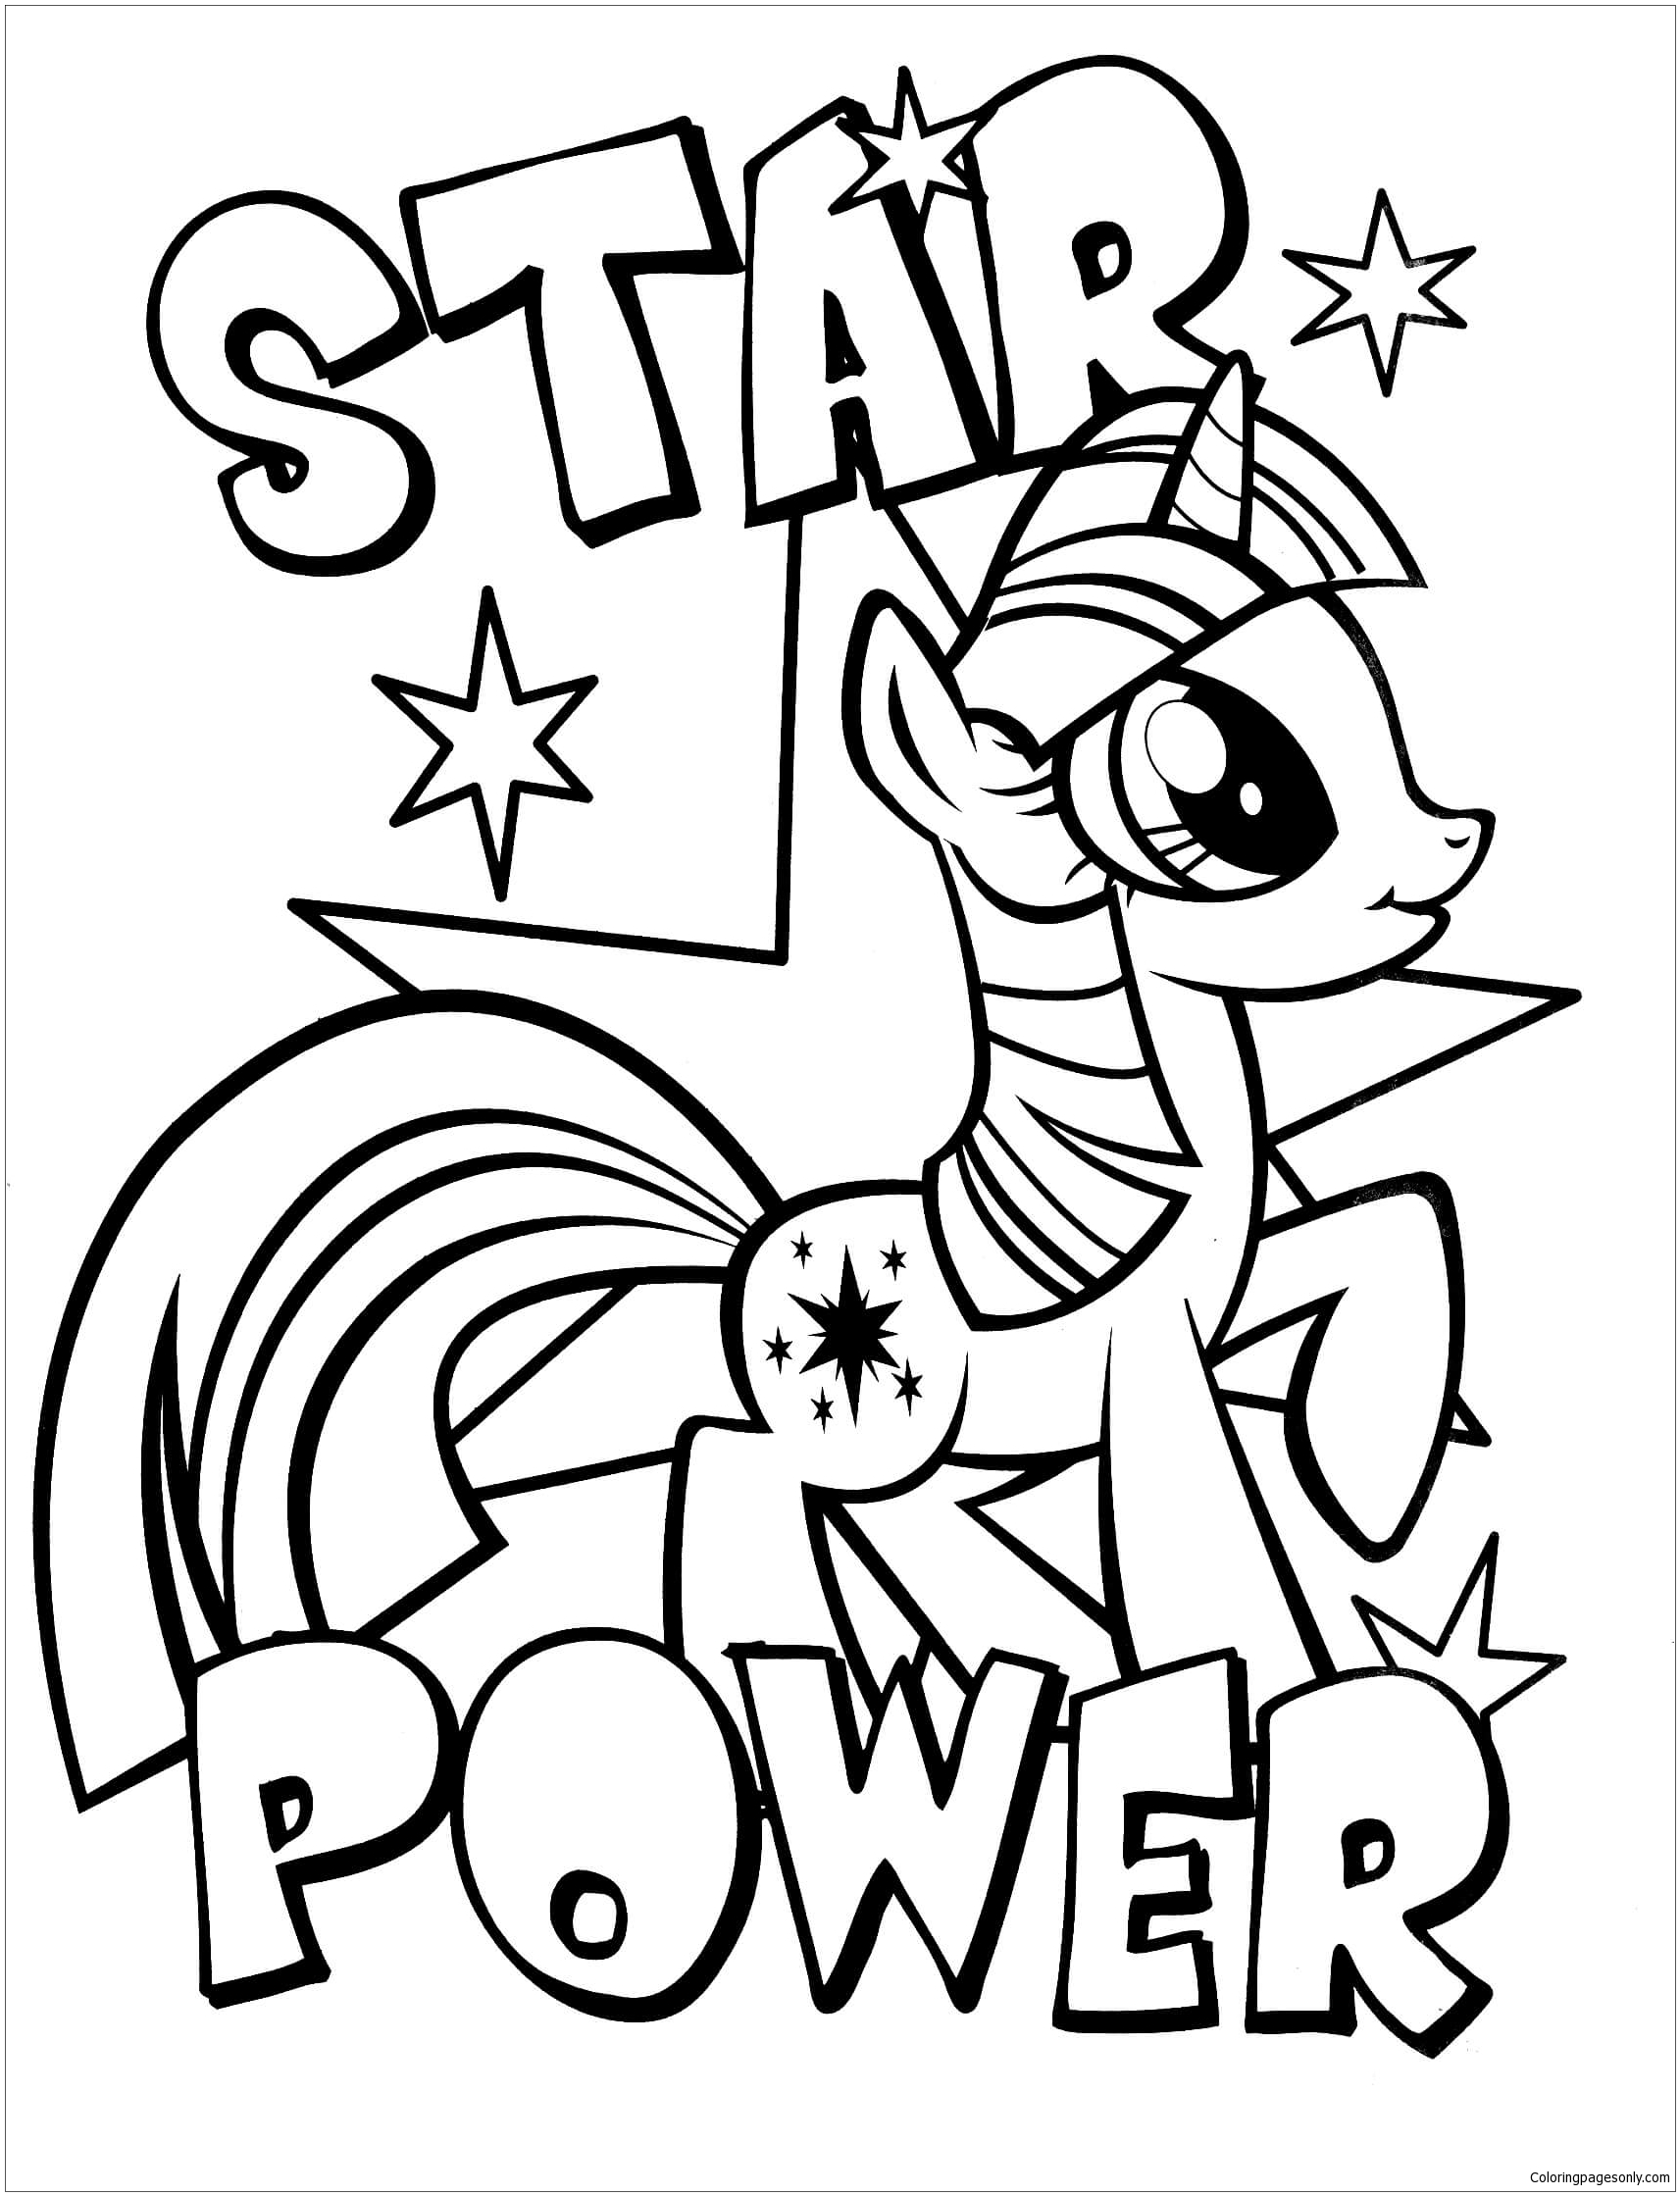 - My Little Pony 3 Coloring Page - Free Coloring Pages Online